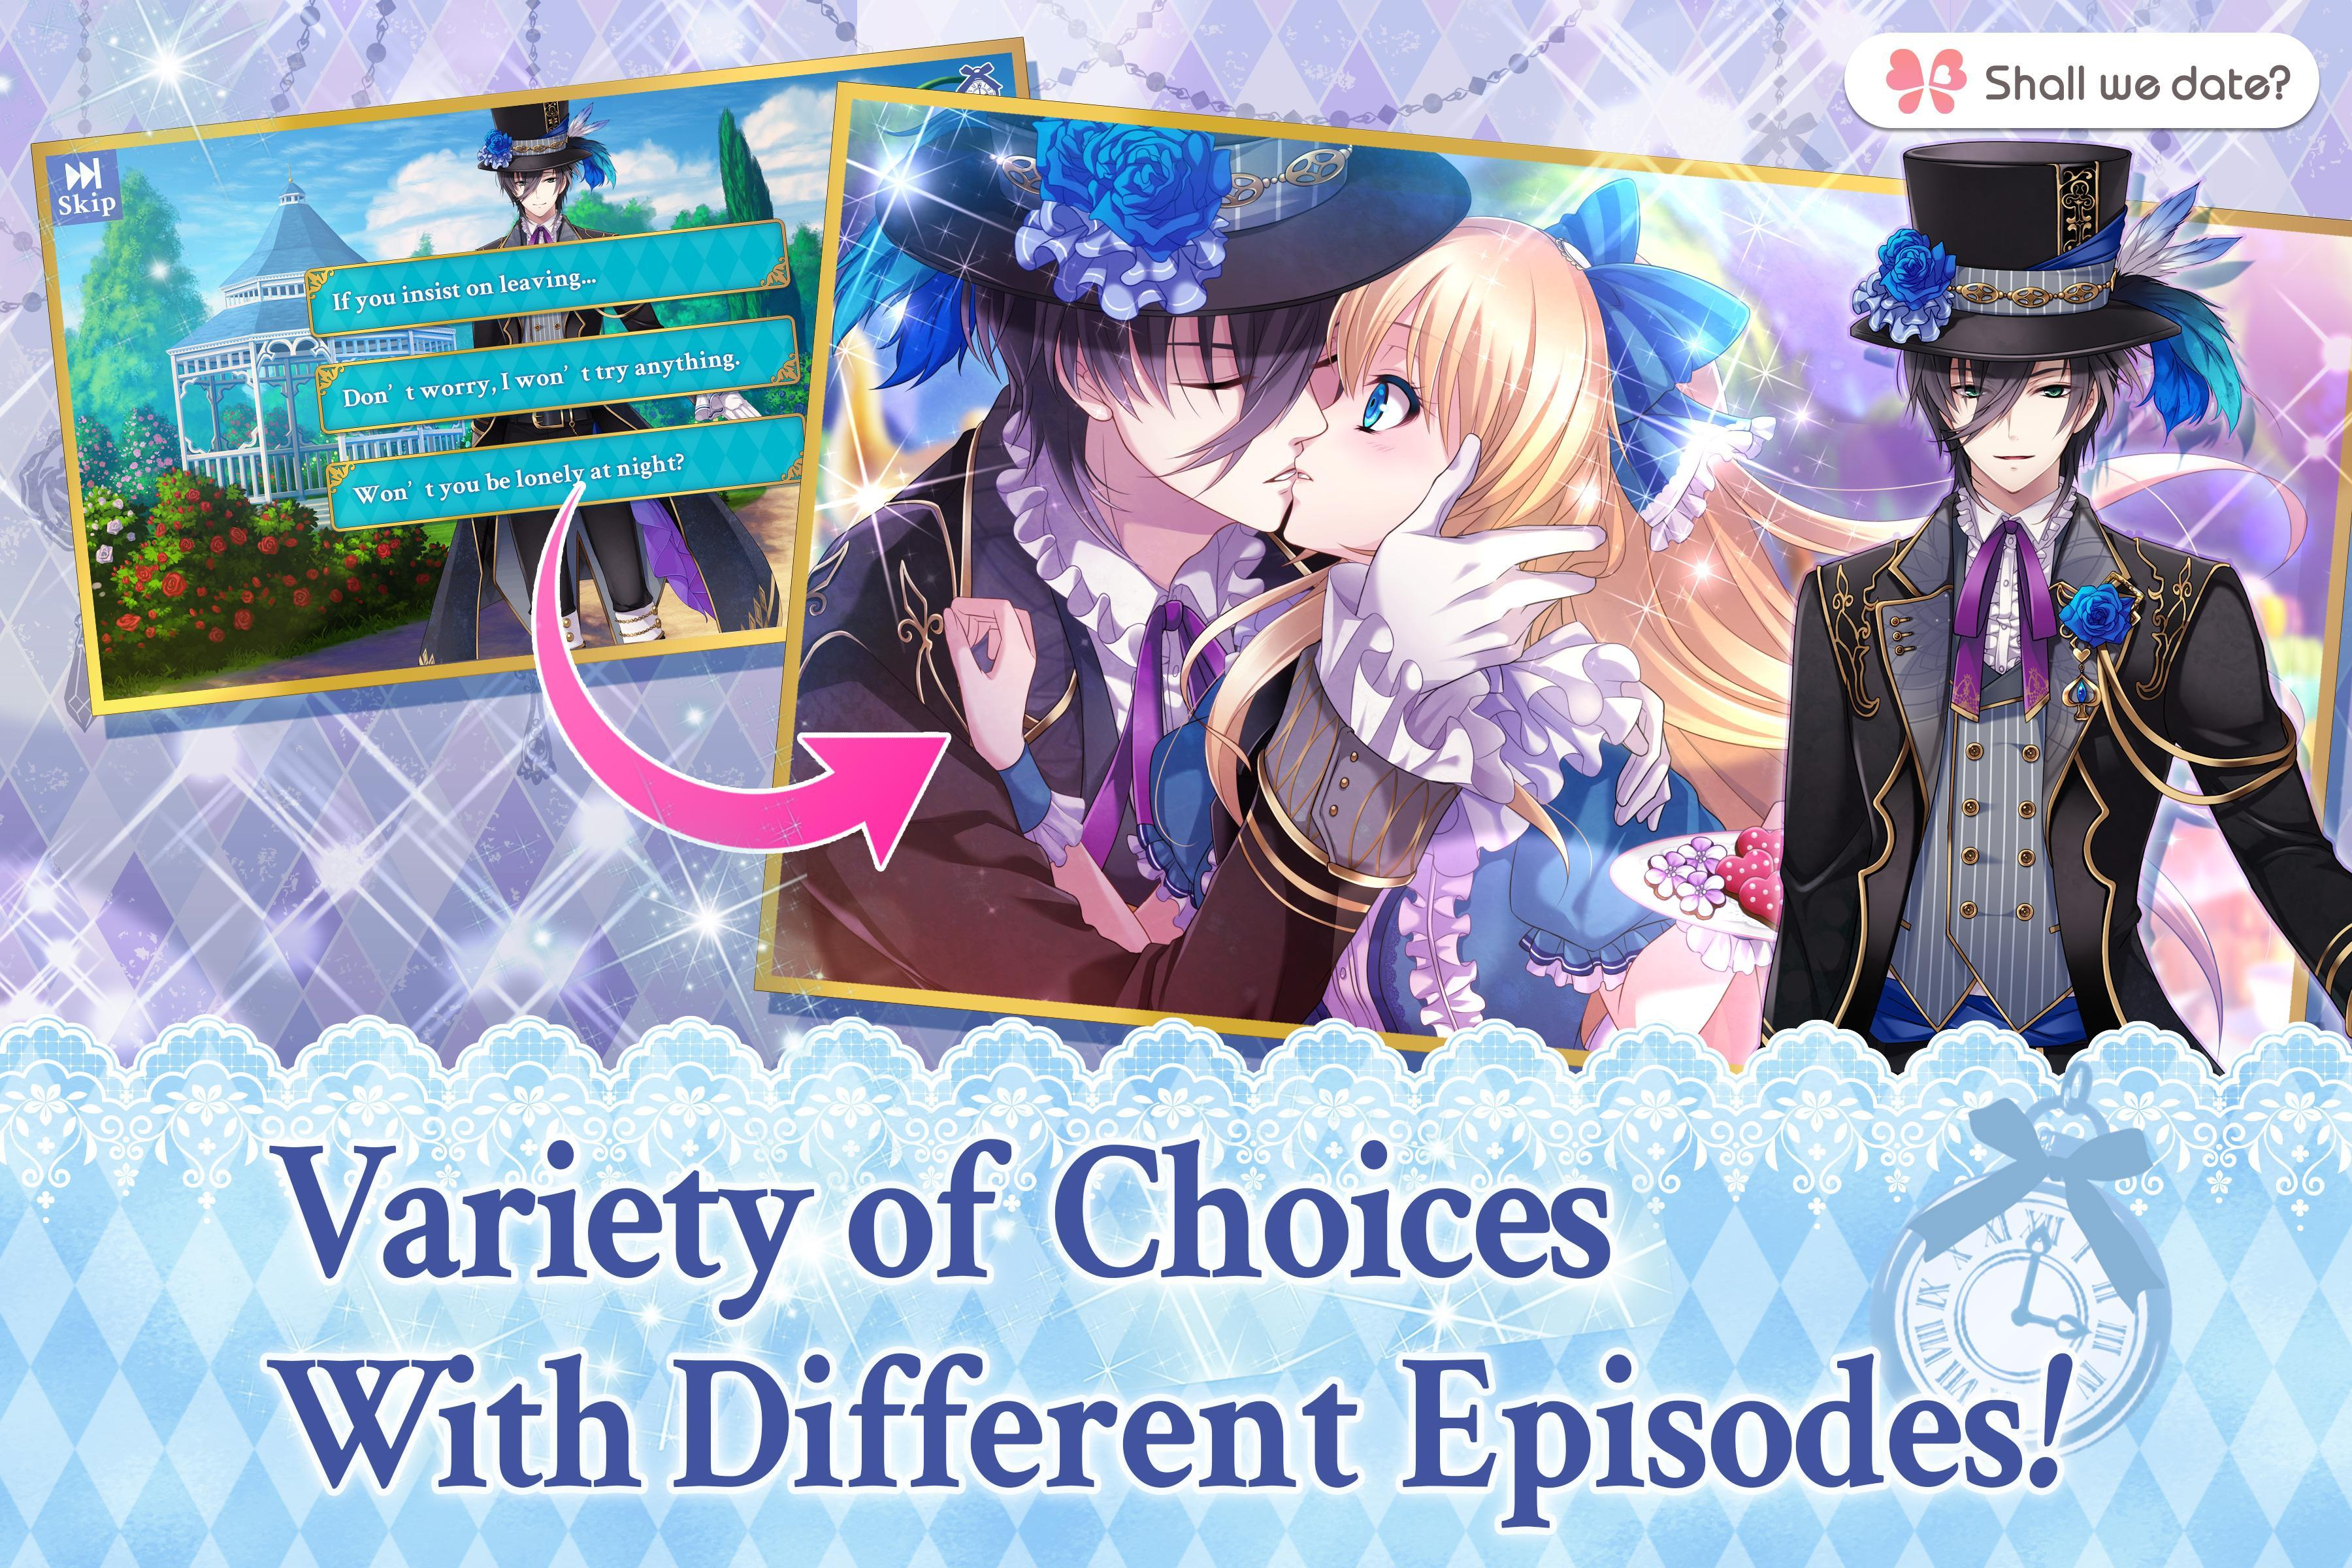 Lost Alice - otome game/dating sim #shall we date 1.5.1 Screenshot 19